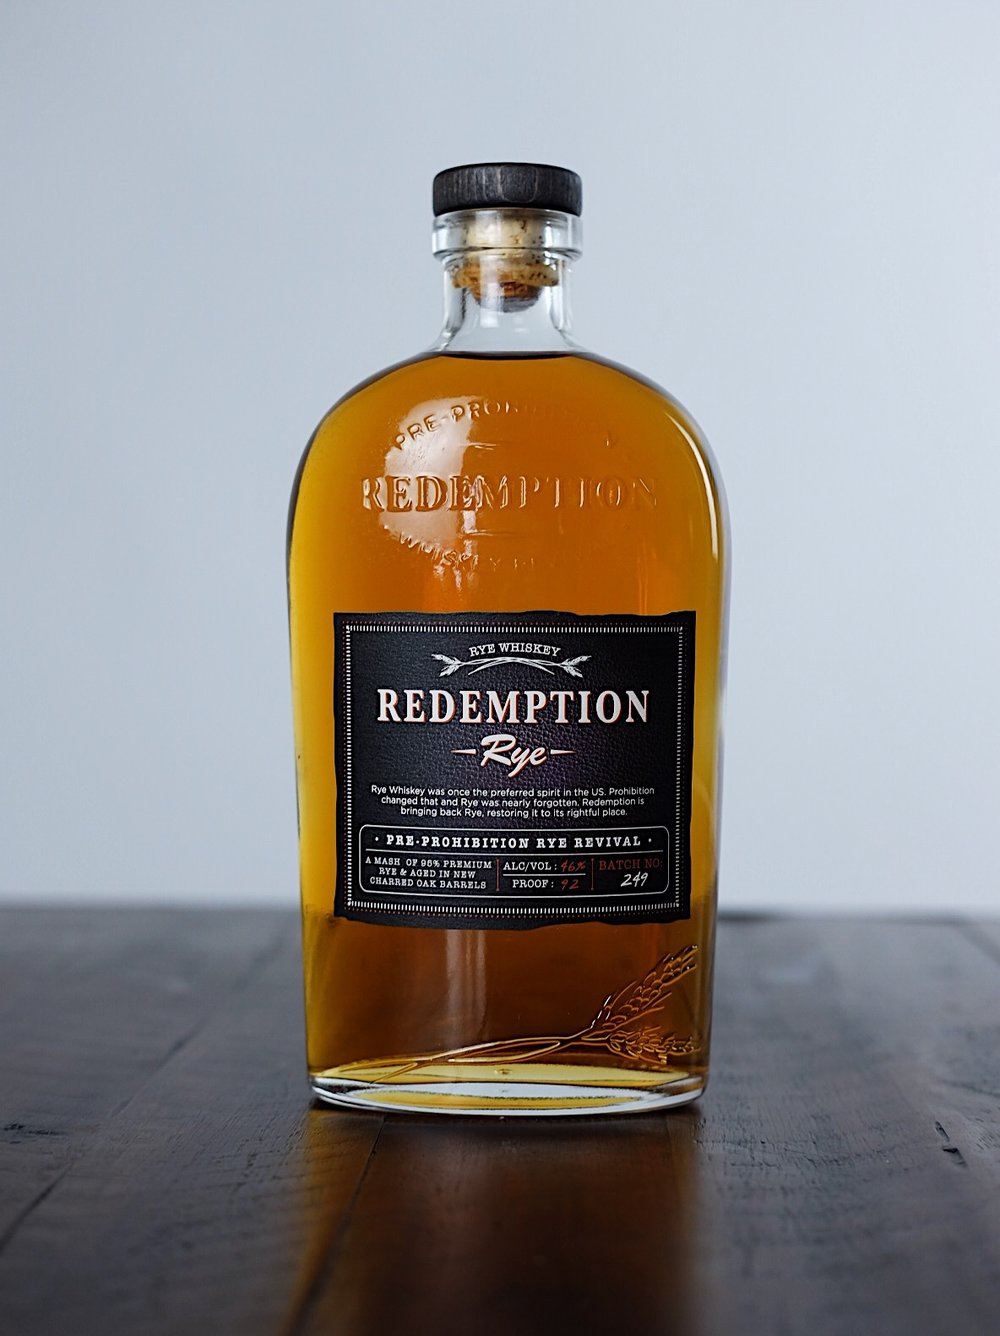 Redemption Rye - AGE: NAS (no age statement)COST: $32-$35ABV: 46DEFINING FLAVORS: Rich & Spicy